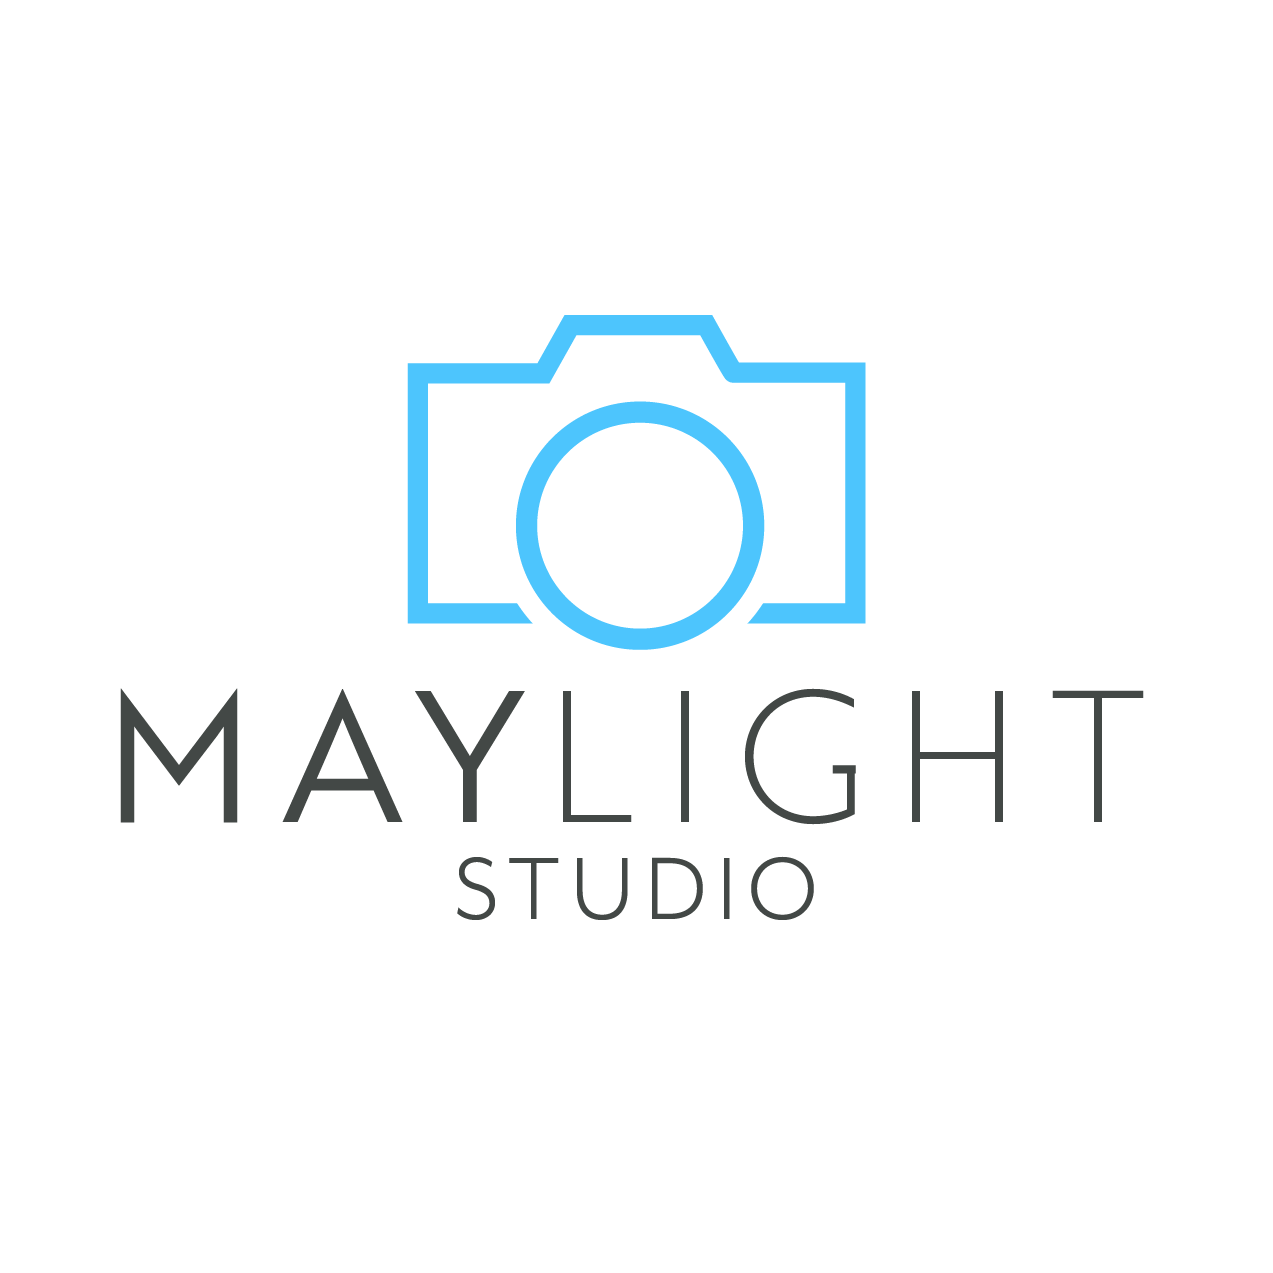 Maylight Studio